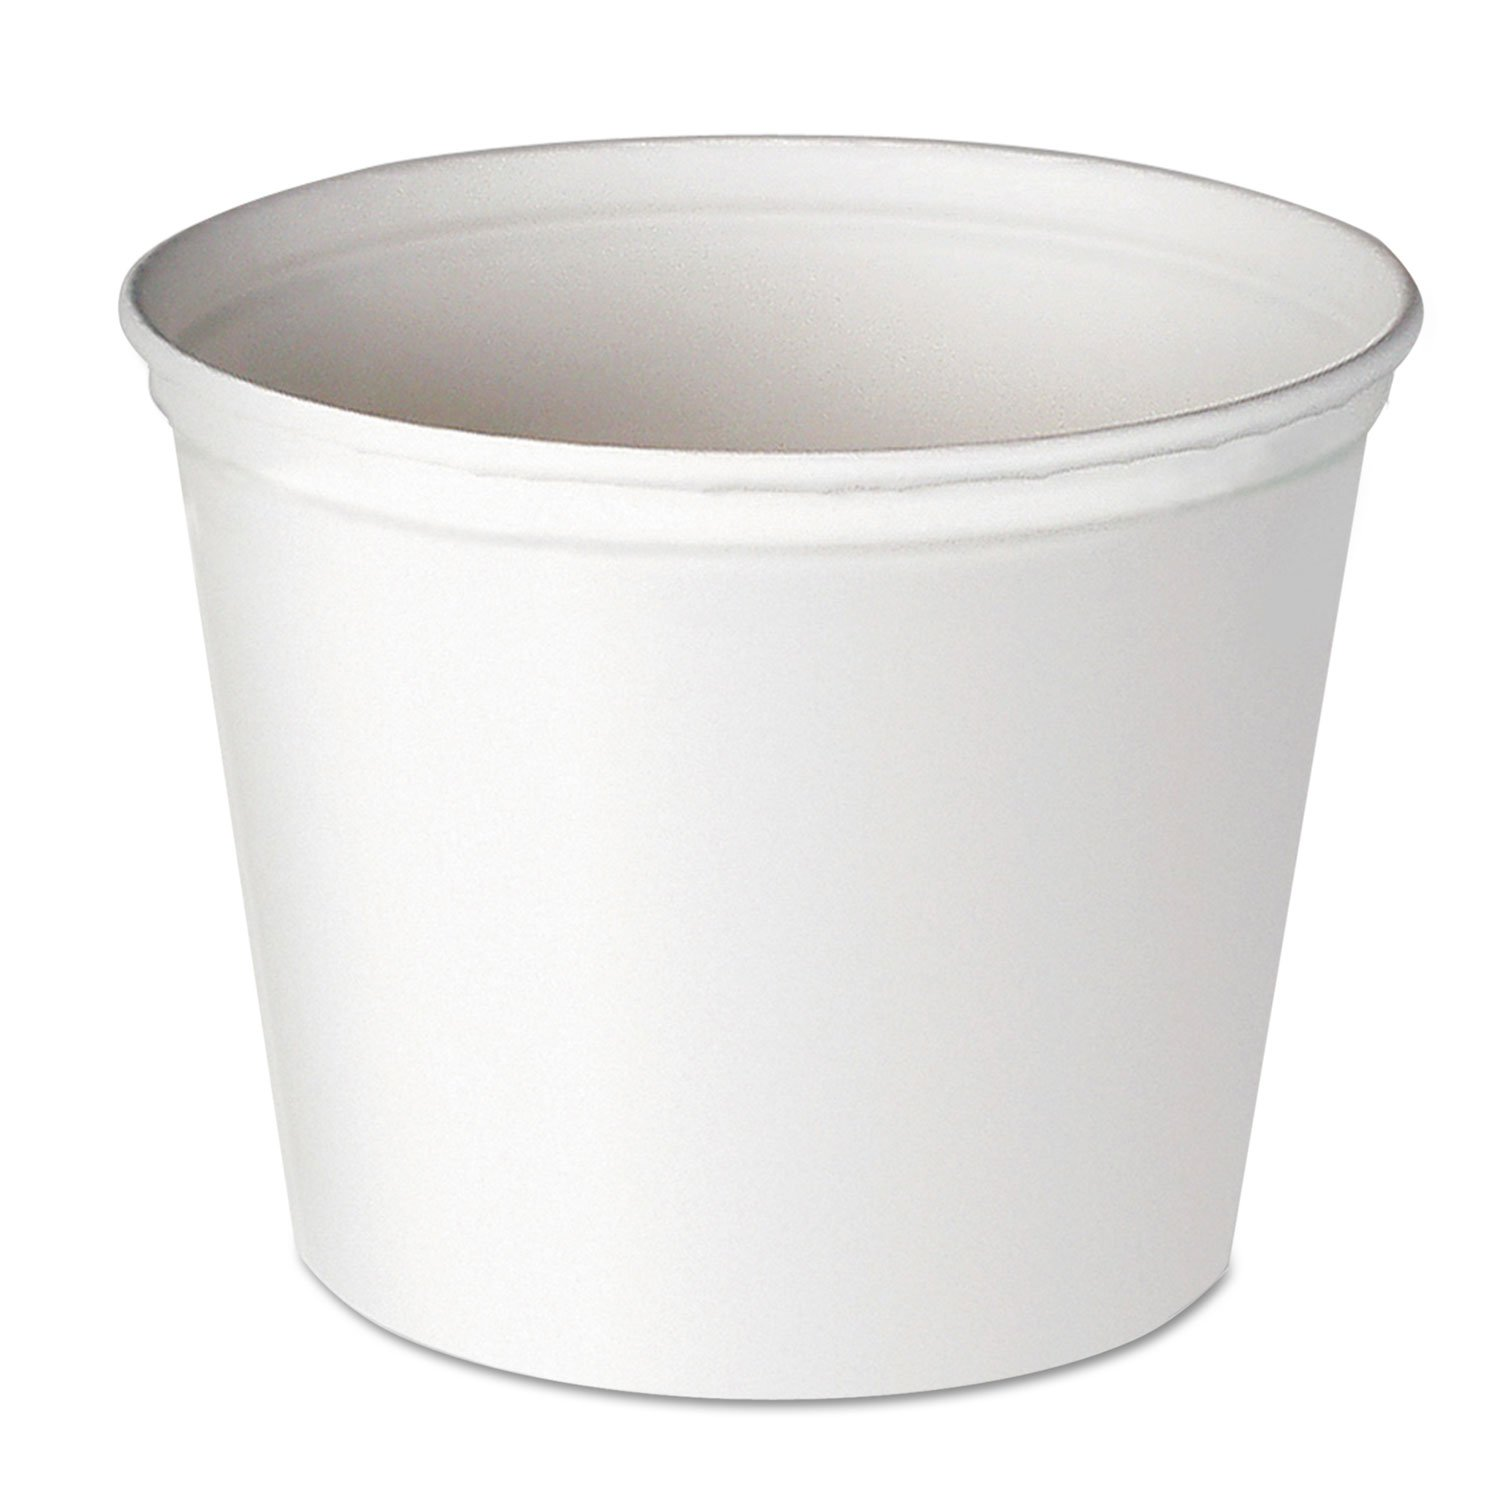 Dart 10T1-N0198 Double Wrapped Paper Bucket, Unwaxed, White, 165oz, 100/carton